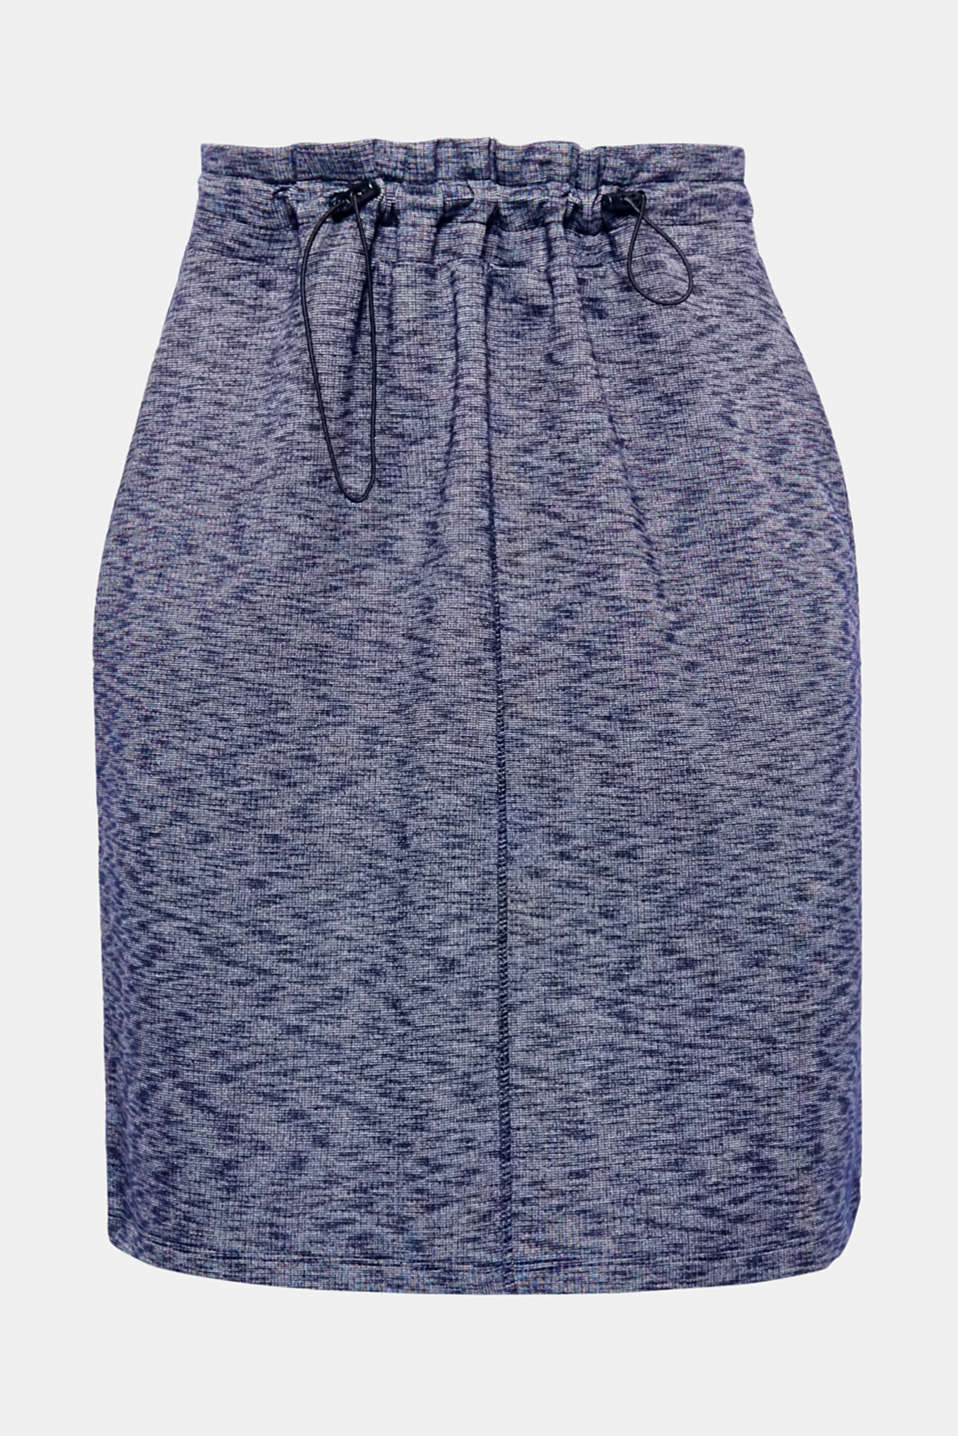 A great essential: this soft sweatshirt skirt is defined by its exceptional comfort, sporty details and two-tone melange finish.